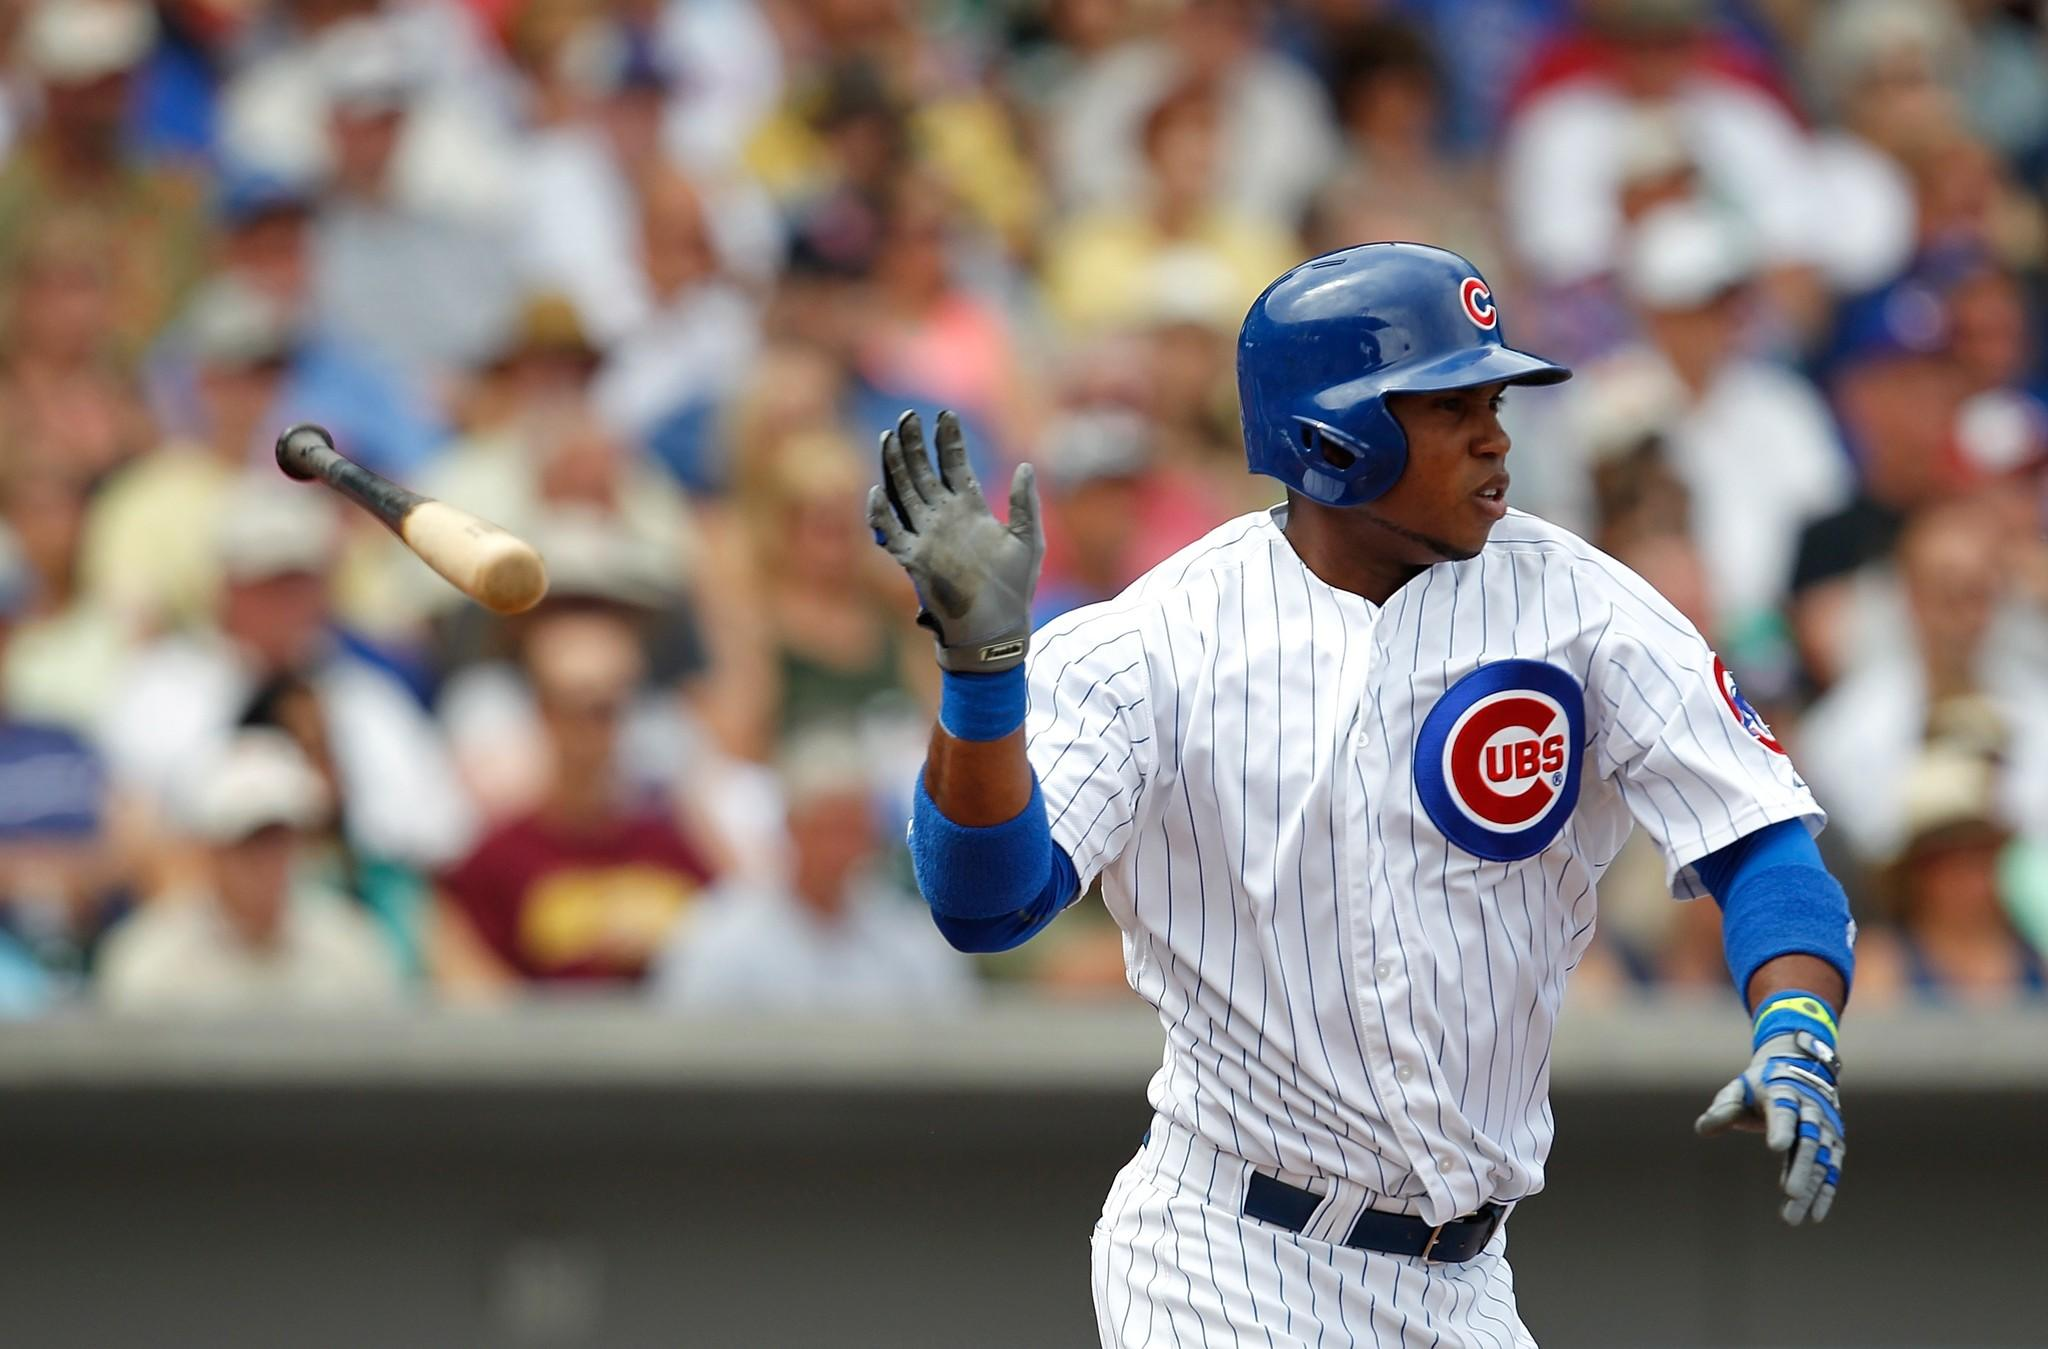 Luis Valbuena of the Chicago Cubs.